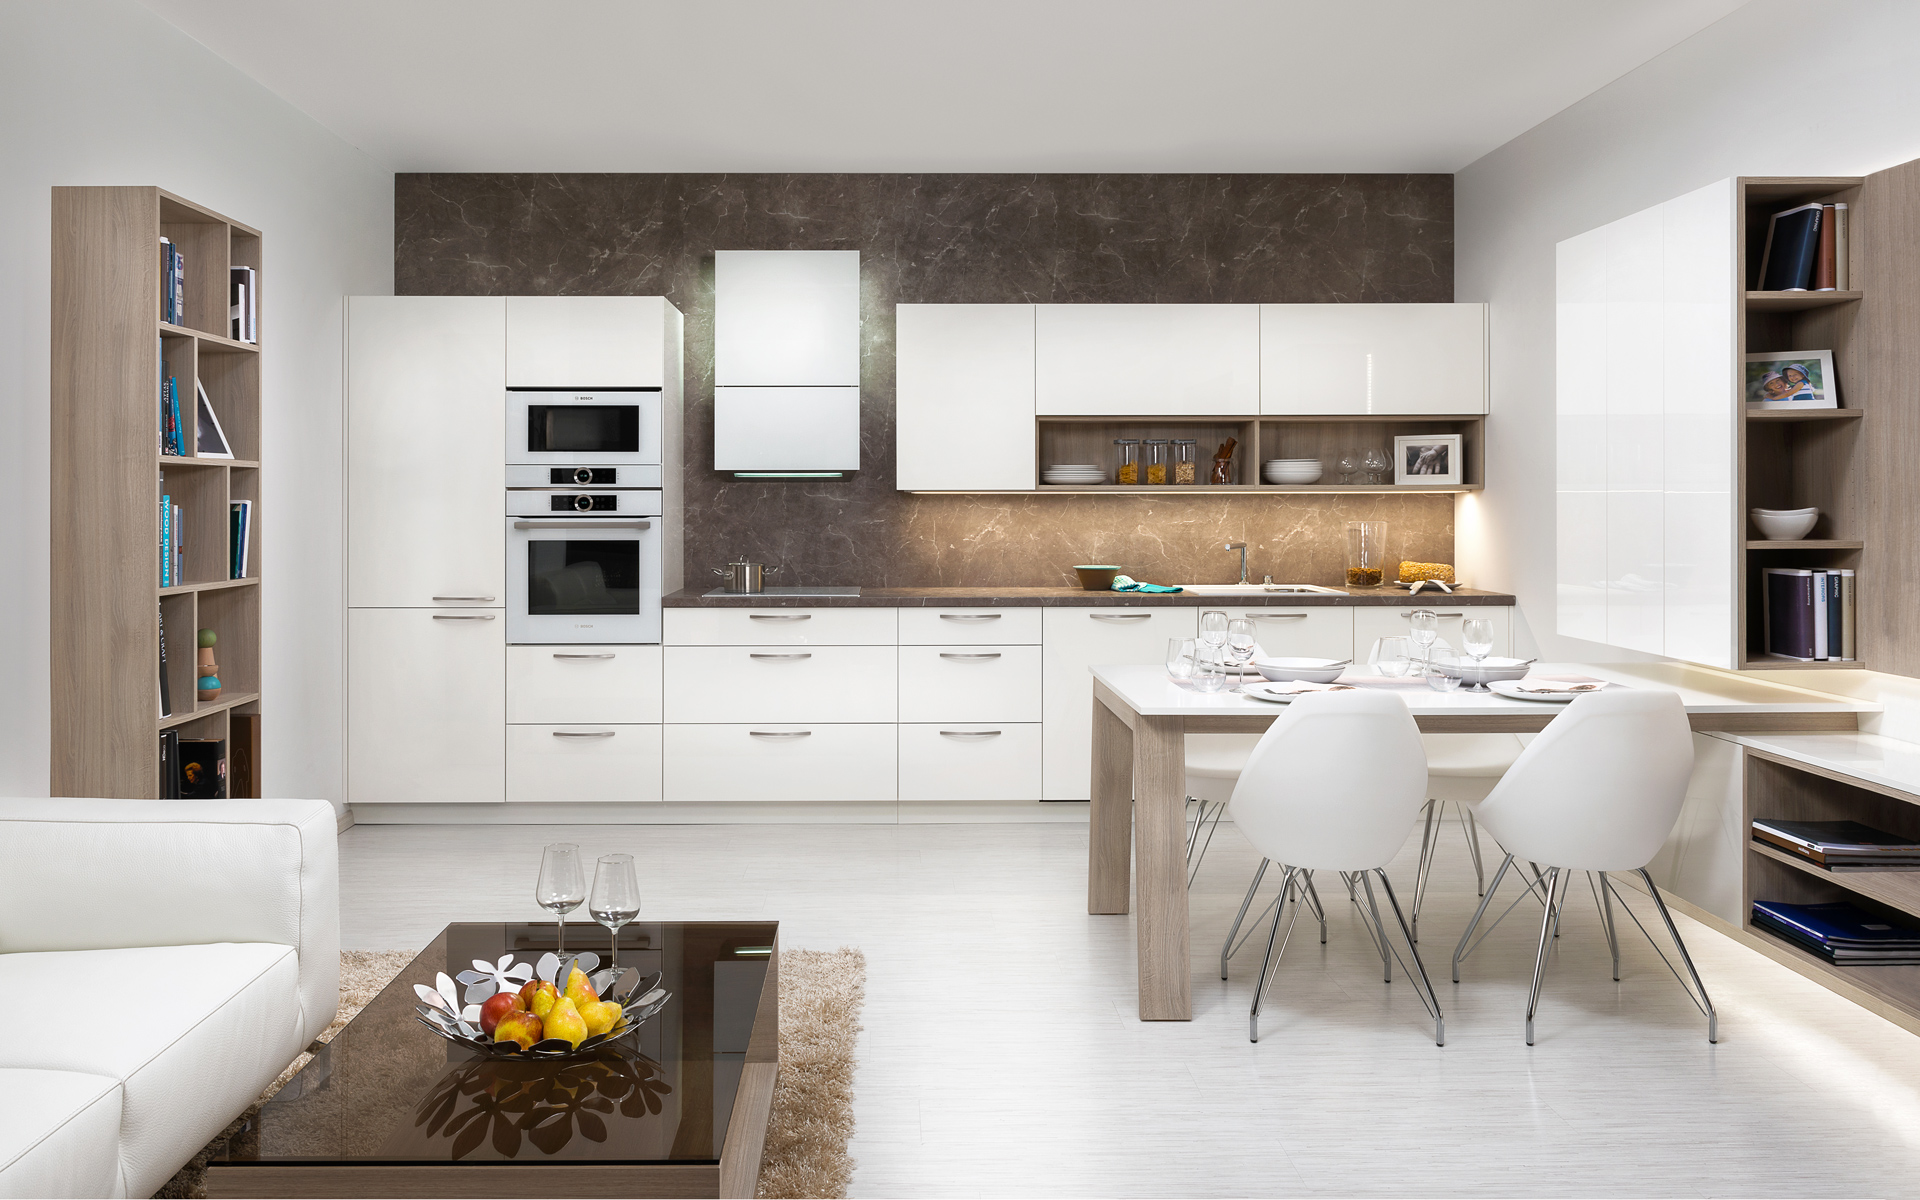 The absolute winner concerning quality and price! Those are the new TREND kitchen models